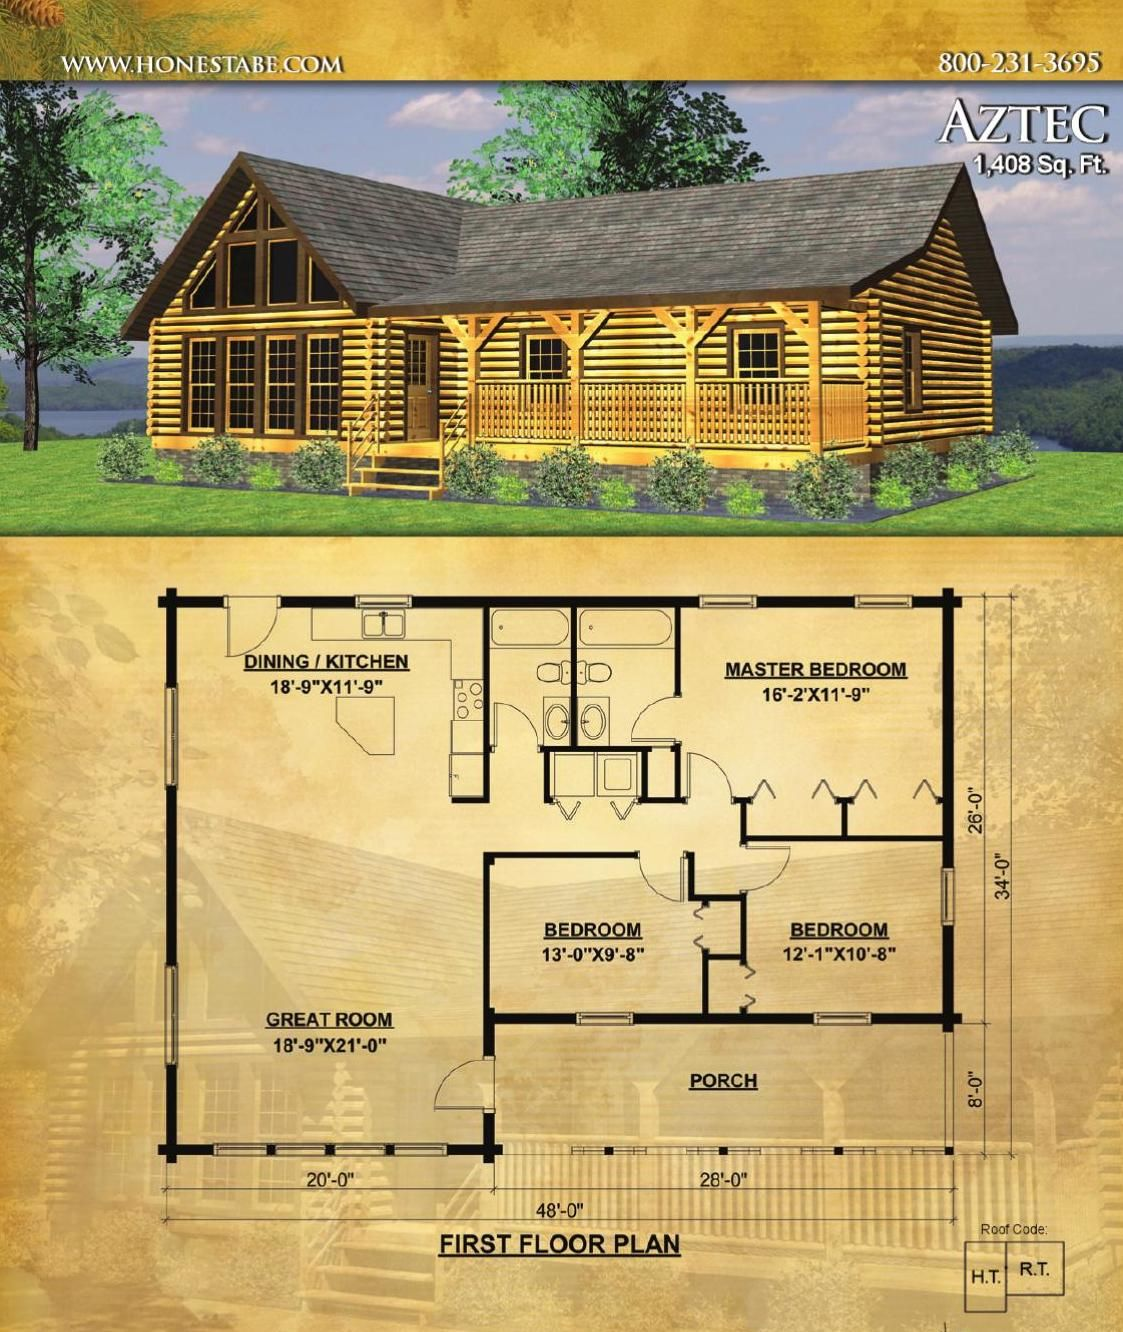 Honest Abe Log Homes Floor Plan Catalog Log Home Floor Plans Dream House Plans Cabin House Plans